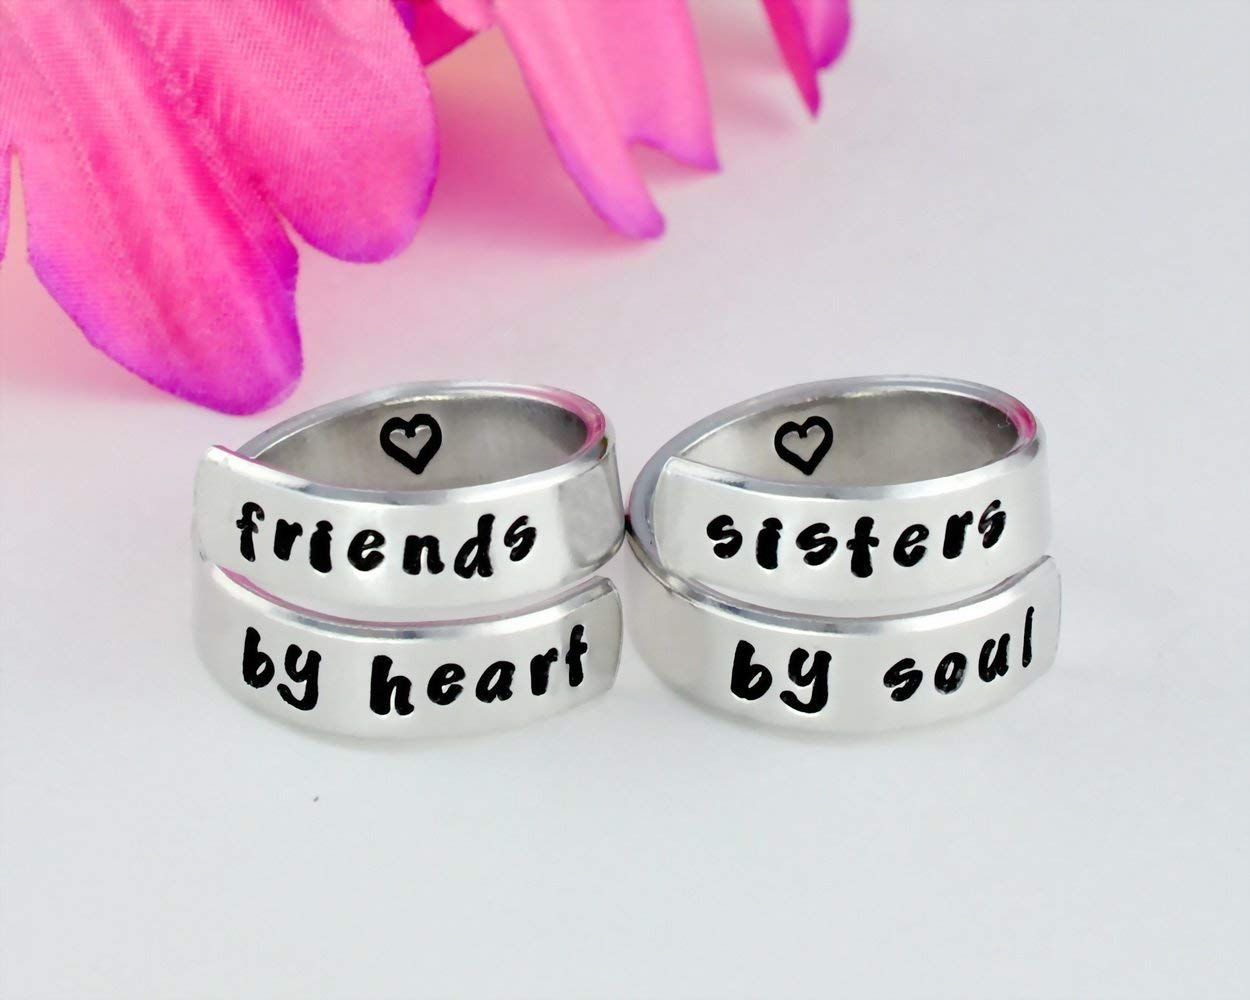 friends by heart/sisters by soul - Hand Stamped Aluminum Spiral Wrap Rings Set of 2, Sorority Sisters Best Friends BFF Friendship Personalized Gifts